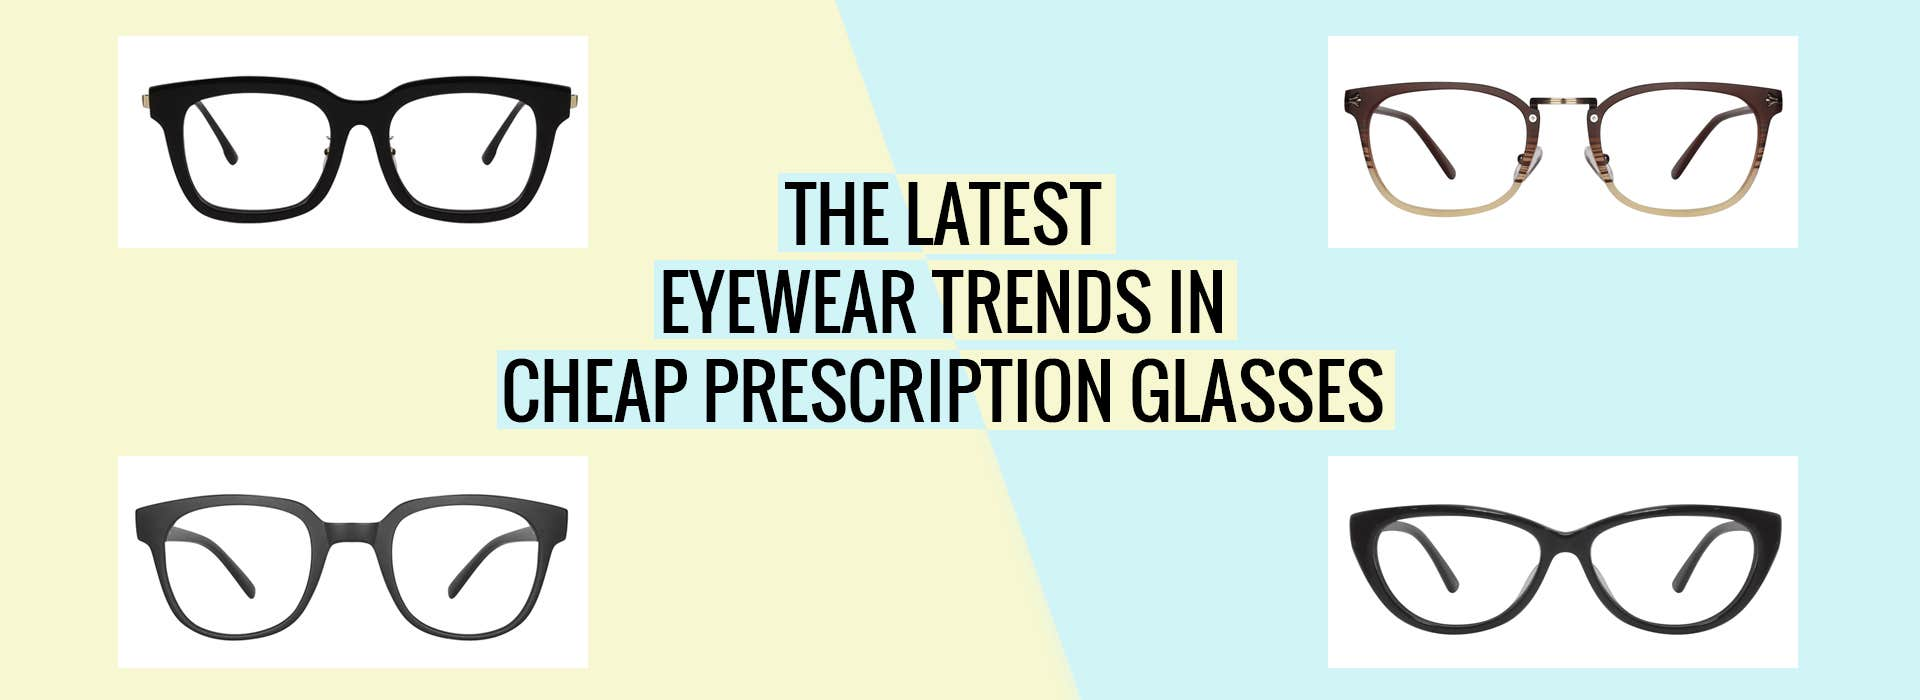 The Latest Eyewear Trends In Cheap Prescription Glasses